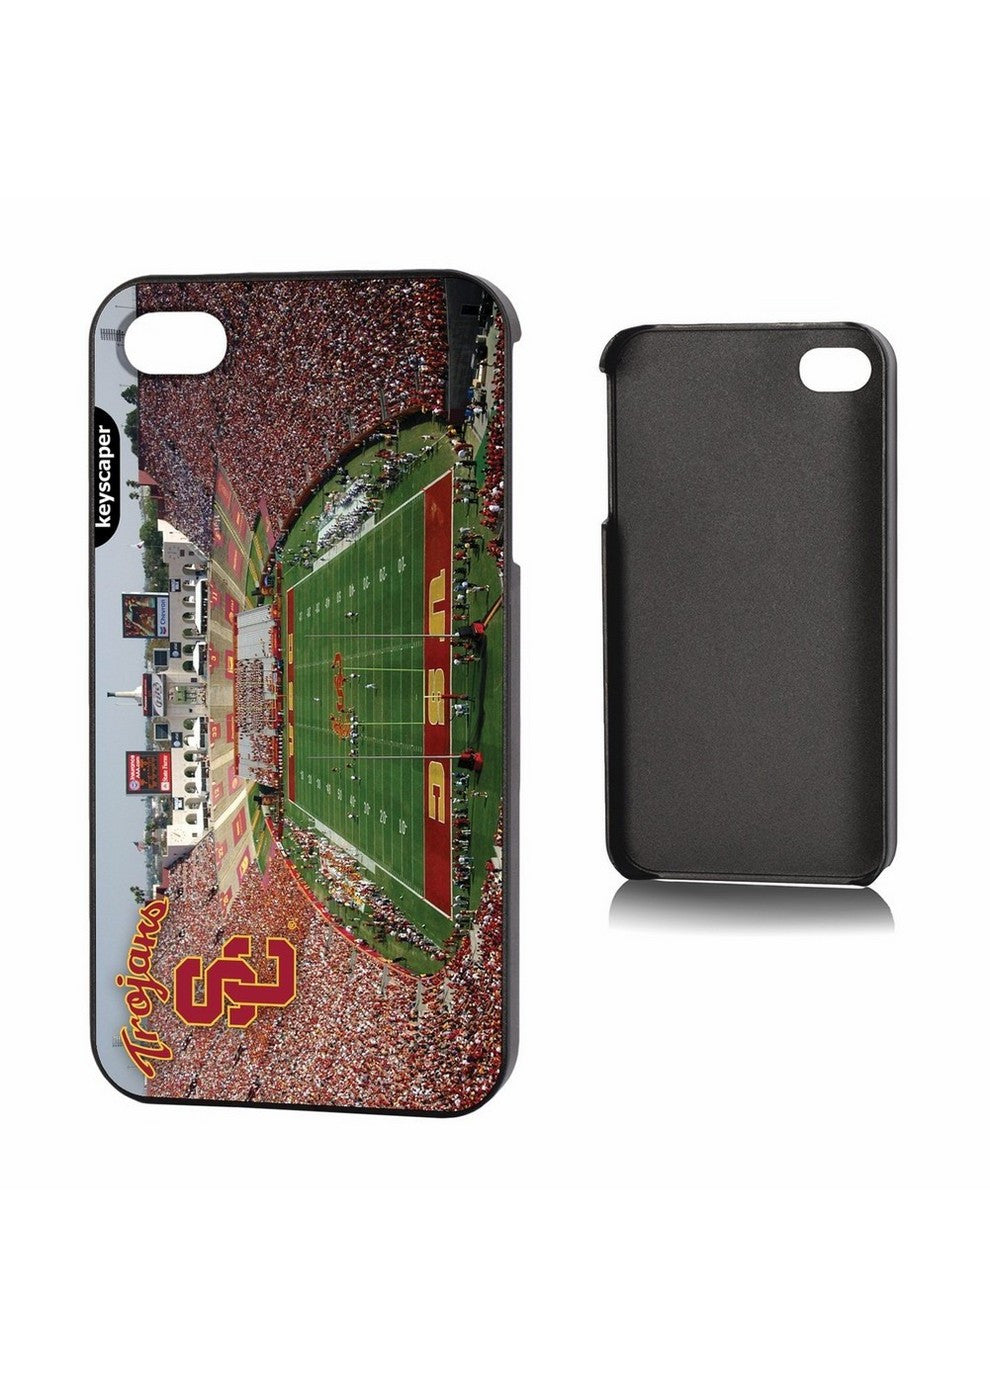 Ncaa Iphone 4 Case- Stadium Image - Usc Trojans SPI-KEYCUSCIP4SD